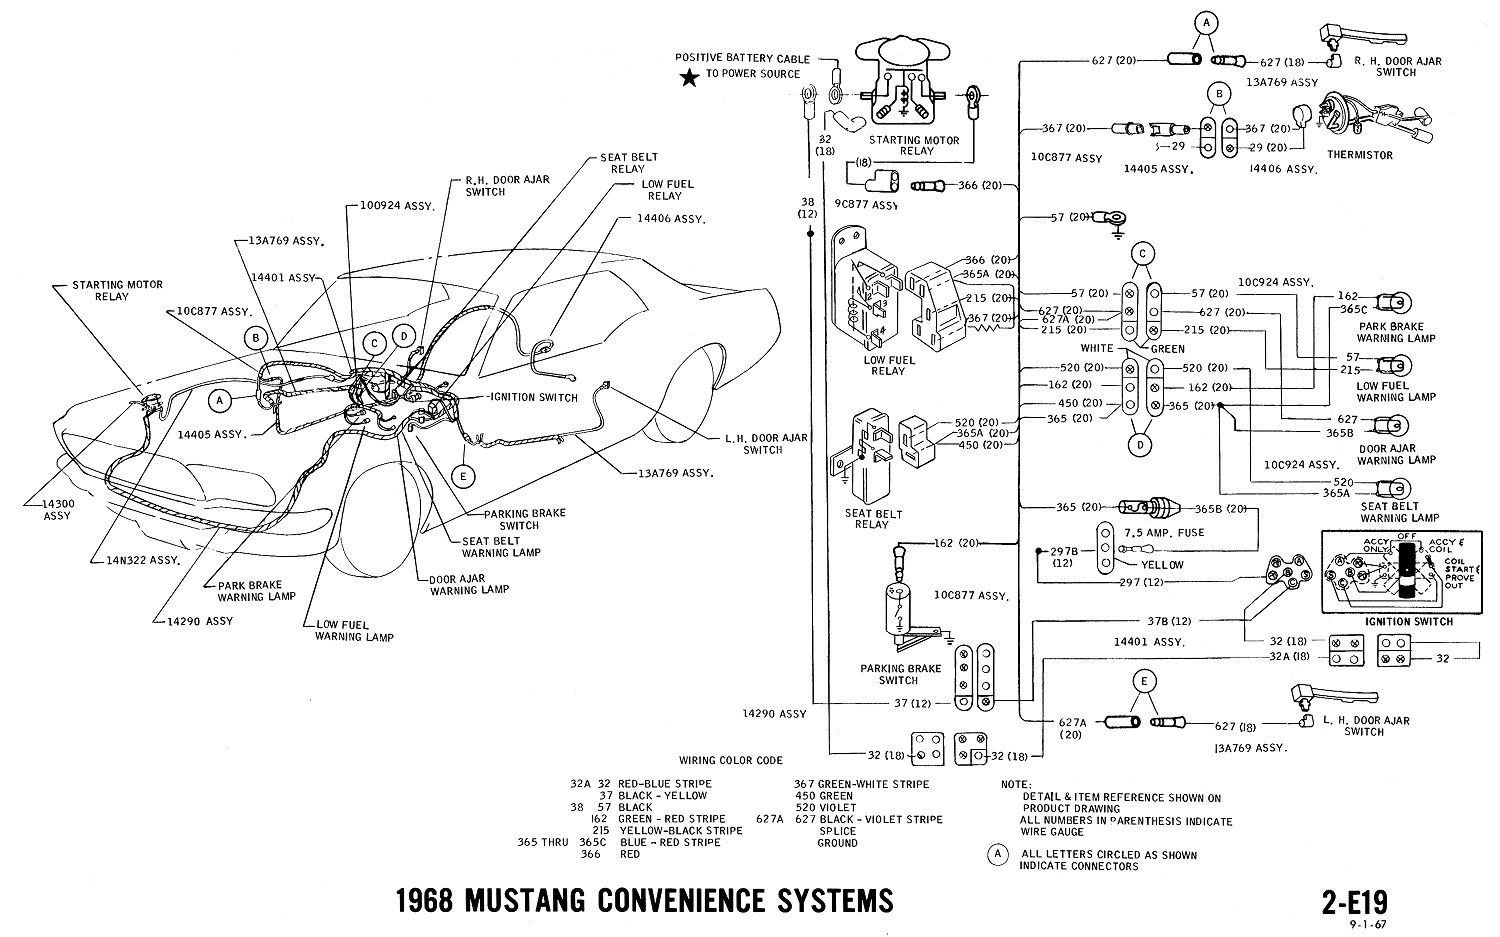 1968 mustang wiring diagram convenience systems 1968 mustang wiring diagrams and vacuum schematics average joe 1969 mustang wiring diagram at honlapkeszites.co